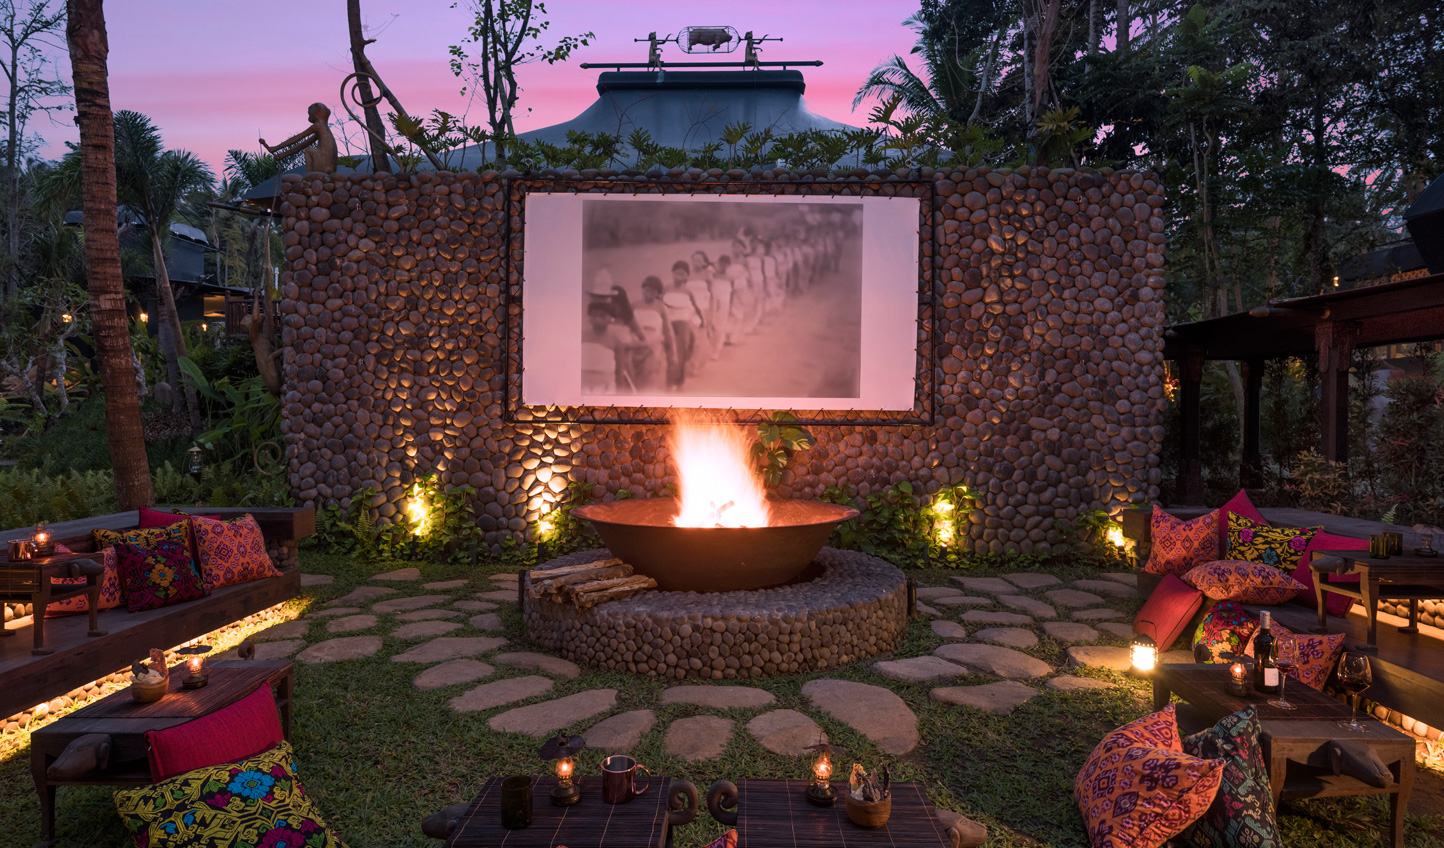 Cosy up by the campfire and enjoy a black and white movie or a tale from the in-house storyteller